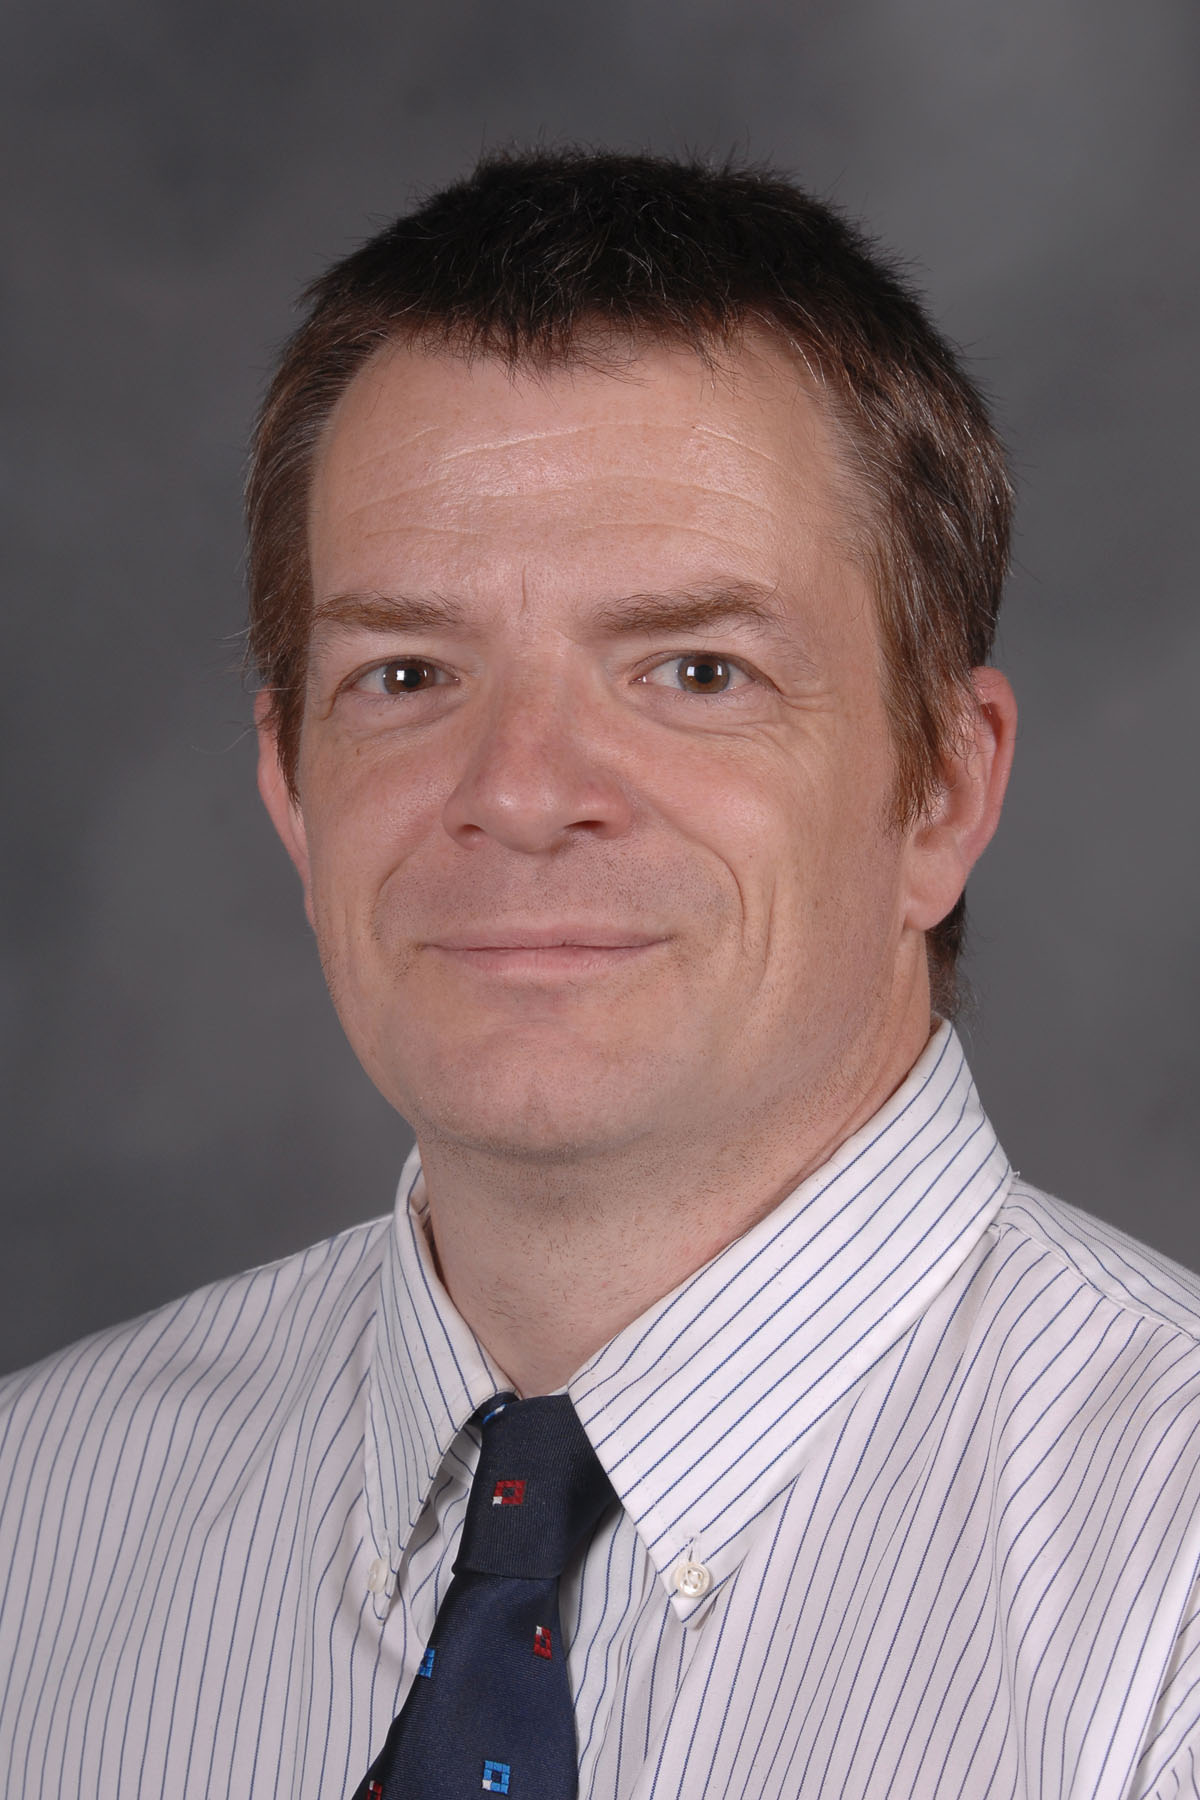 Mark van 't Hooft, eRA Support Analyst